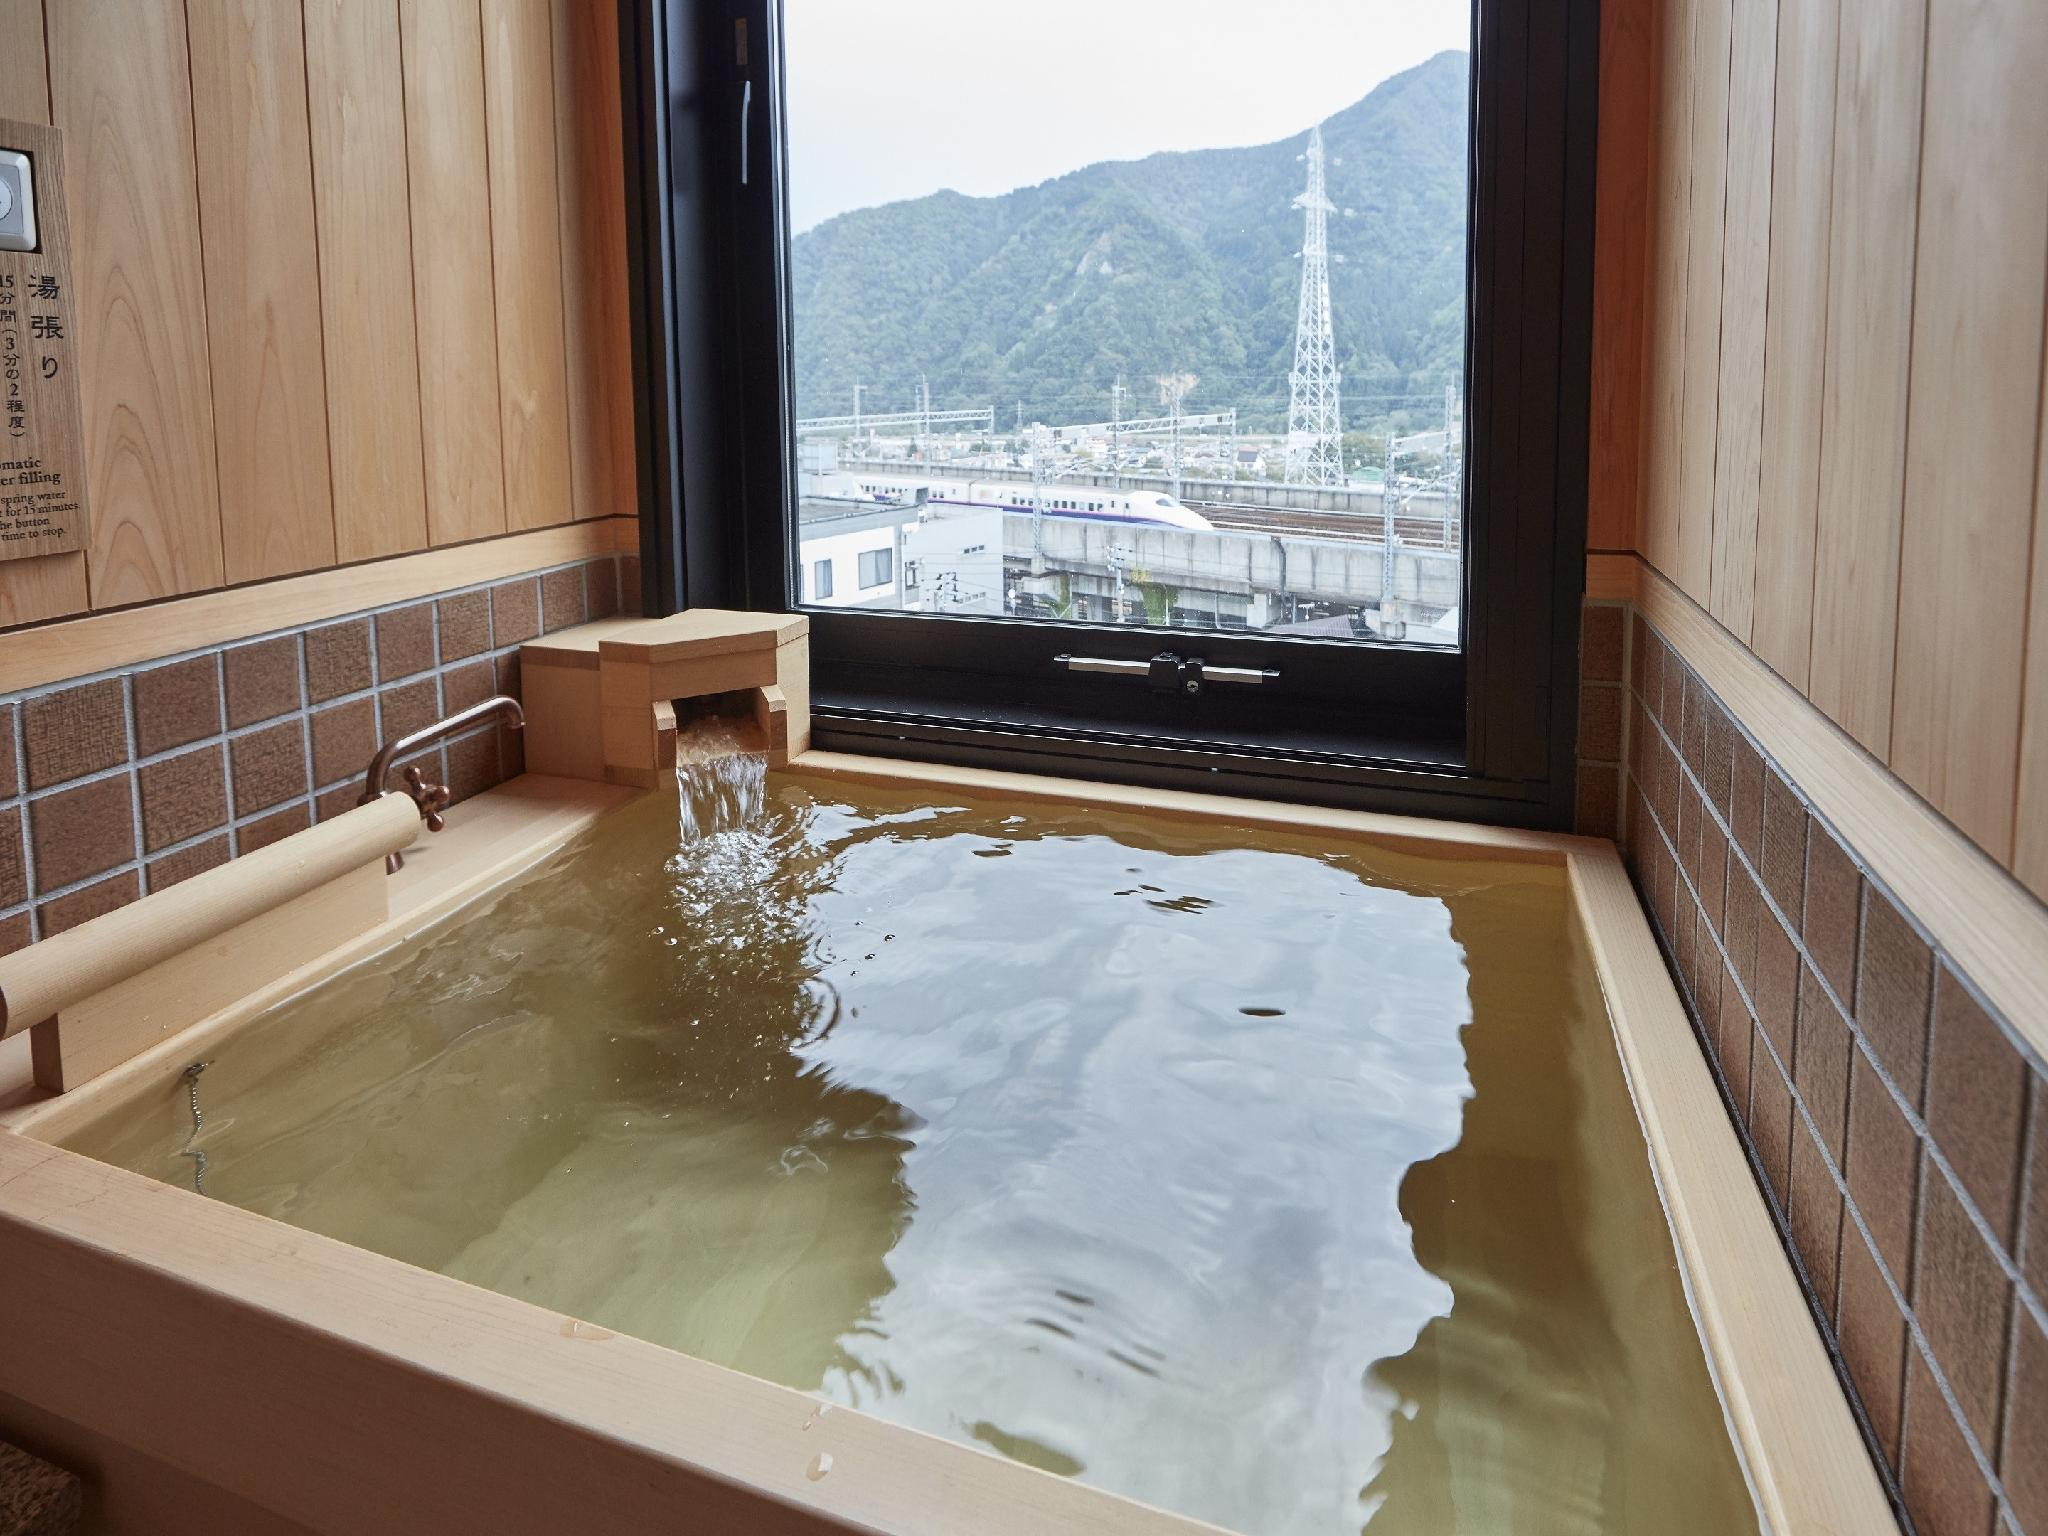 和式房 (附床) (Japanese-style Triple Room with Natural Hot Spring Bath)